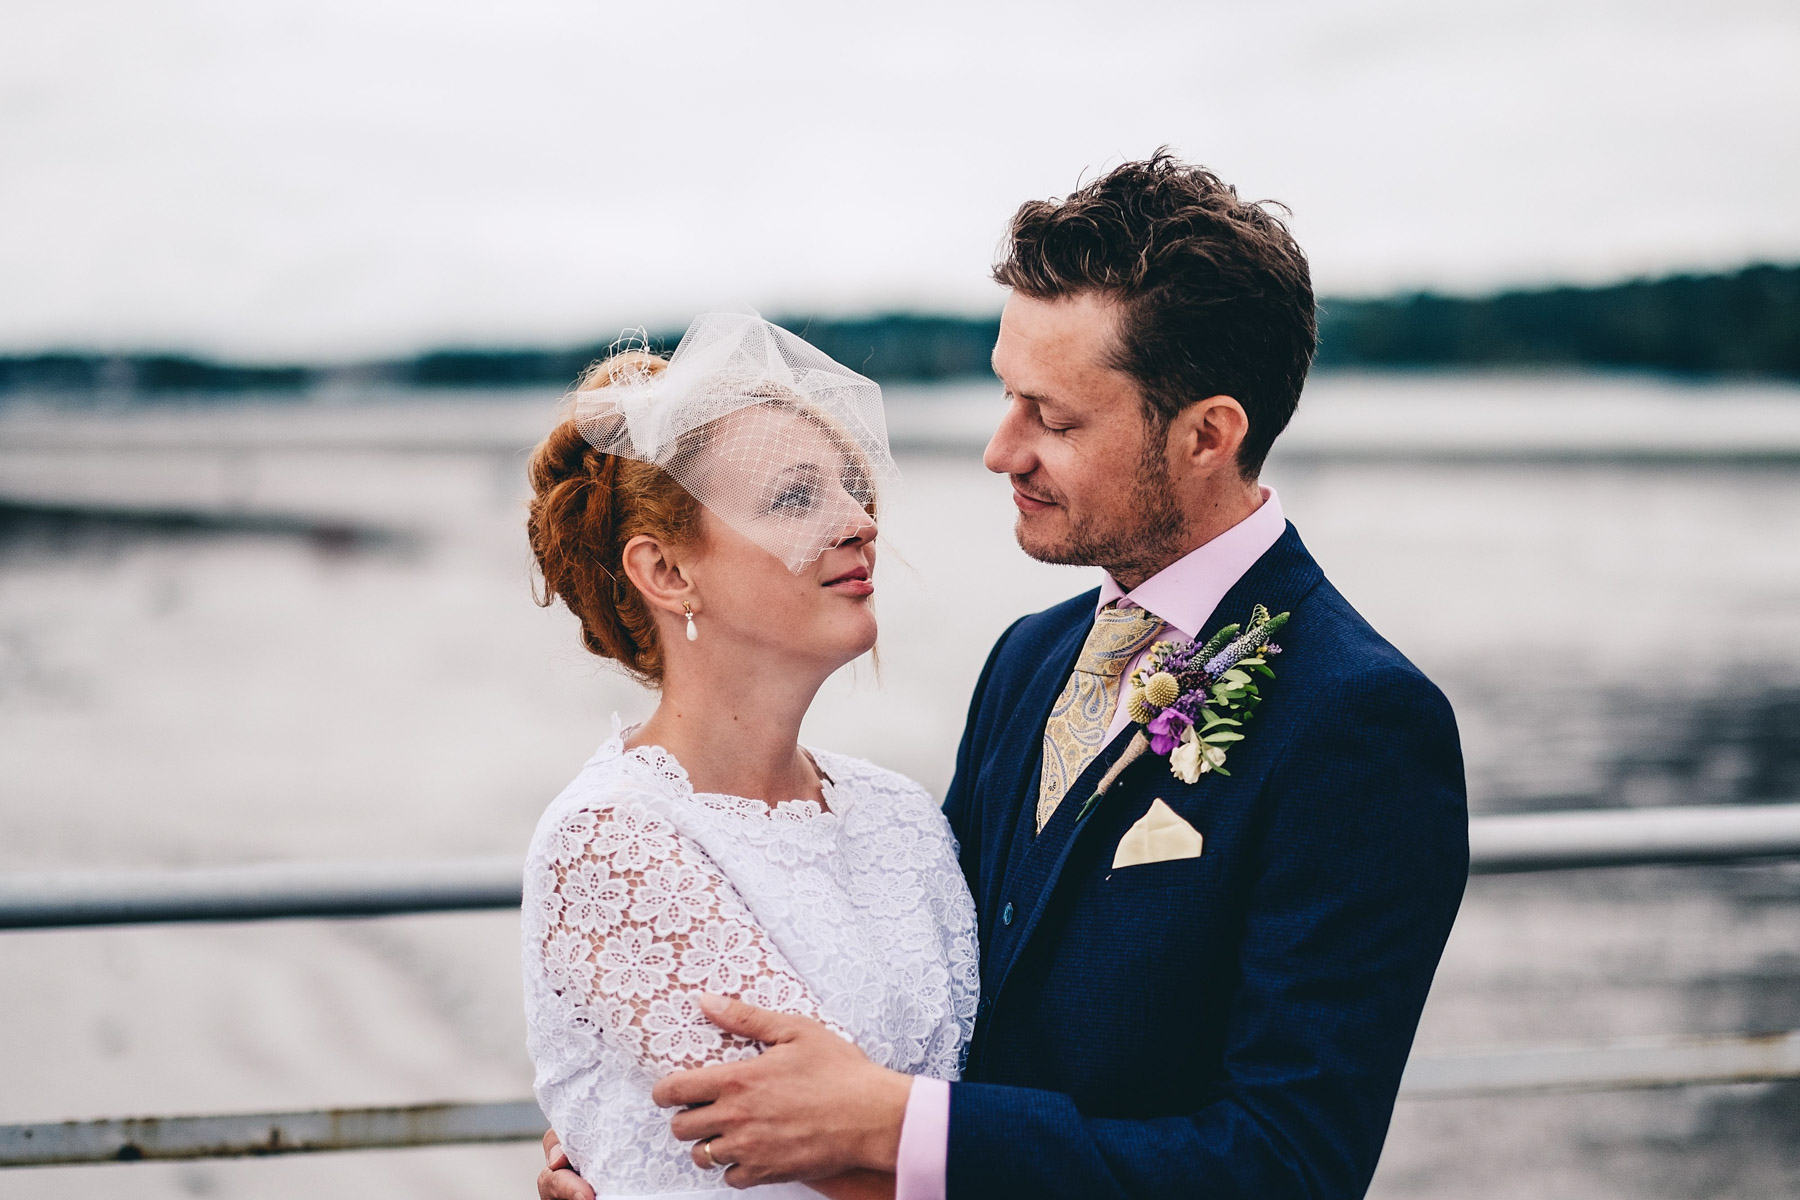 Bride and groom look lovingly at each other at Bangor Garth Pier